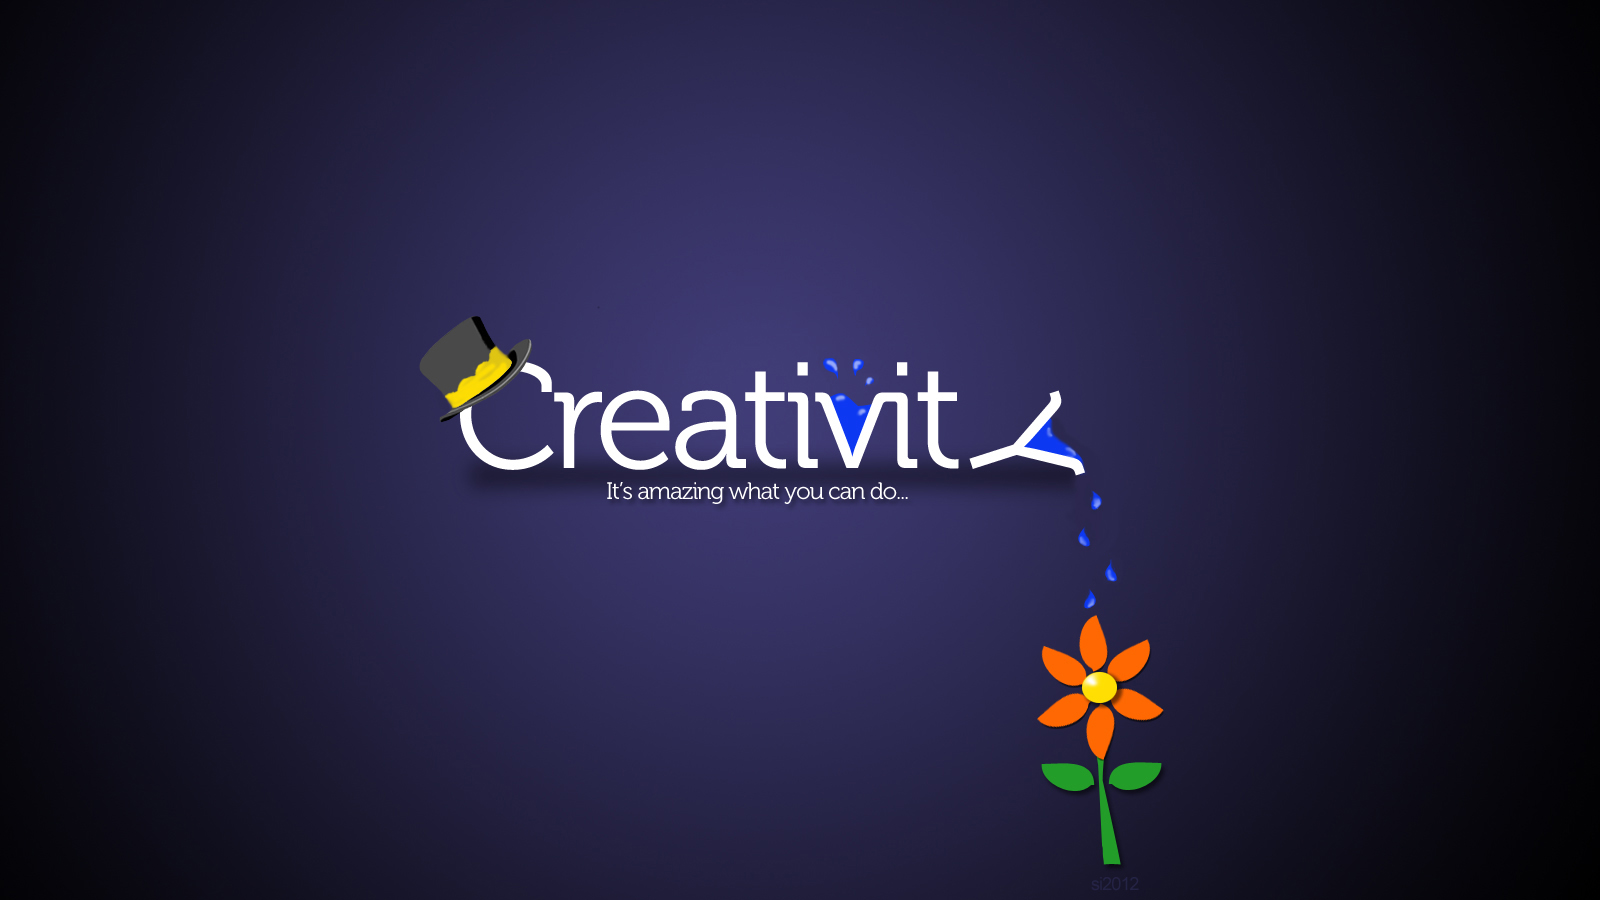 Creativity Desktop Wallpaper by PsPnSue on DeviantArt